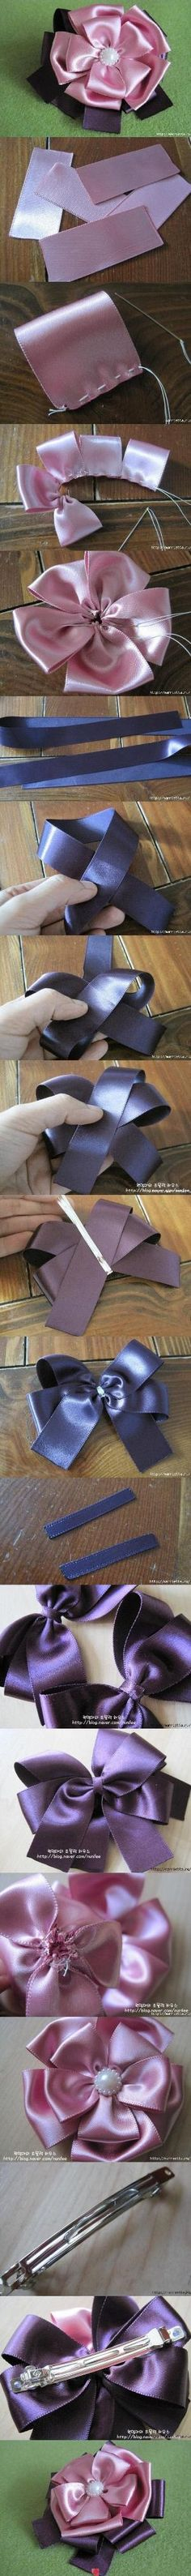 Hair bows, but would make great bows for gift packages. by eddie